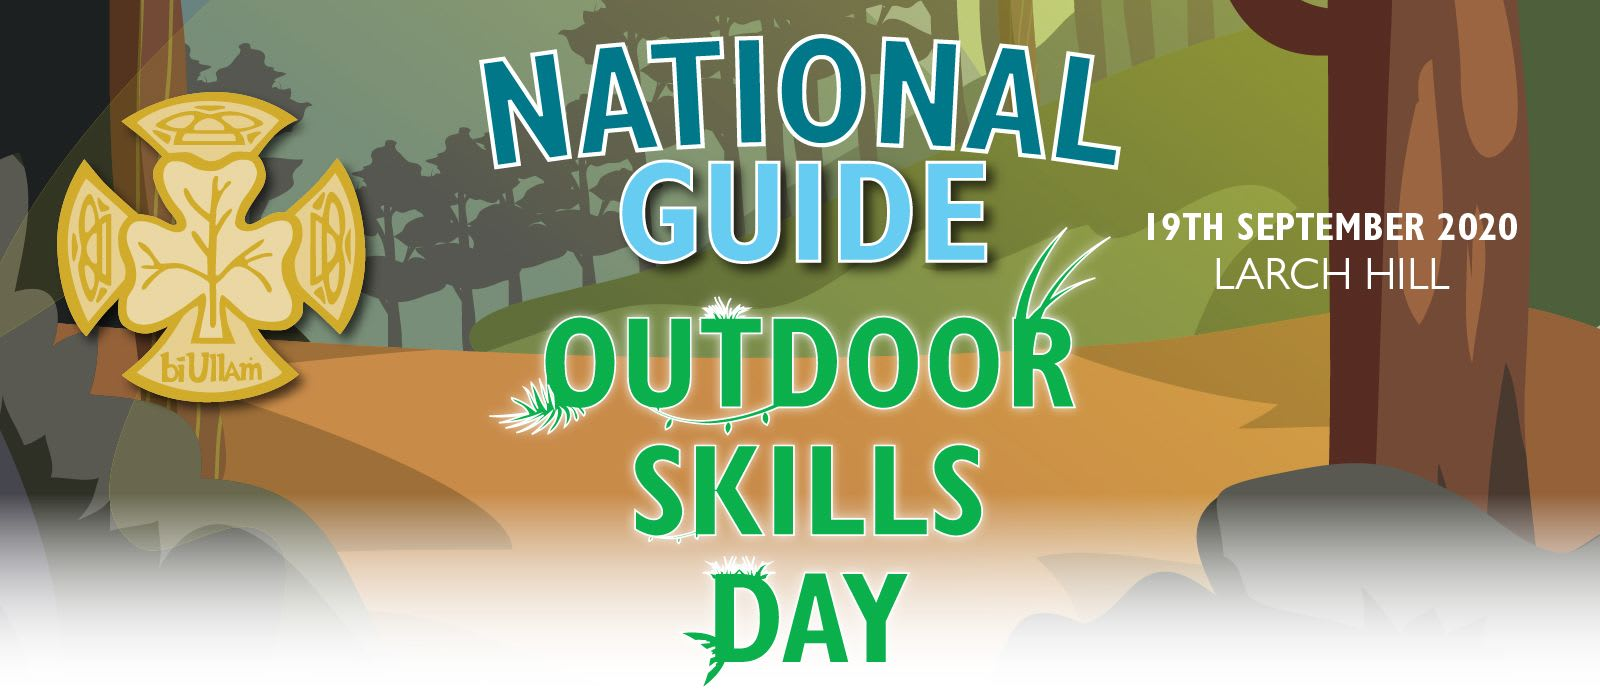 Banner advertising the new date for the Guide Outdoor Skills Day